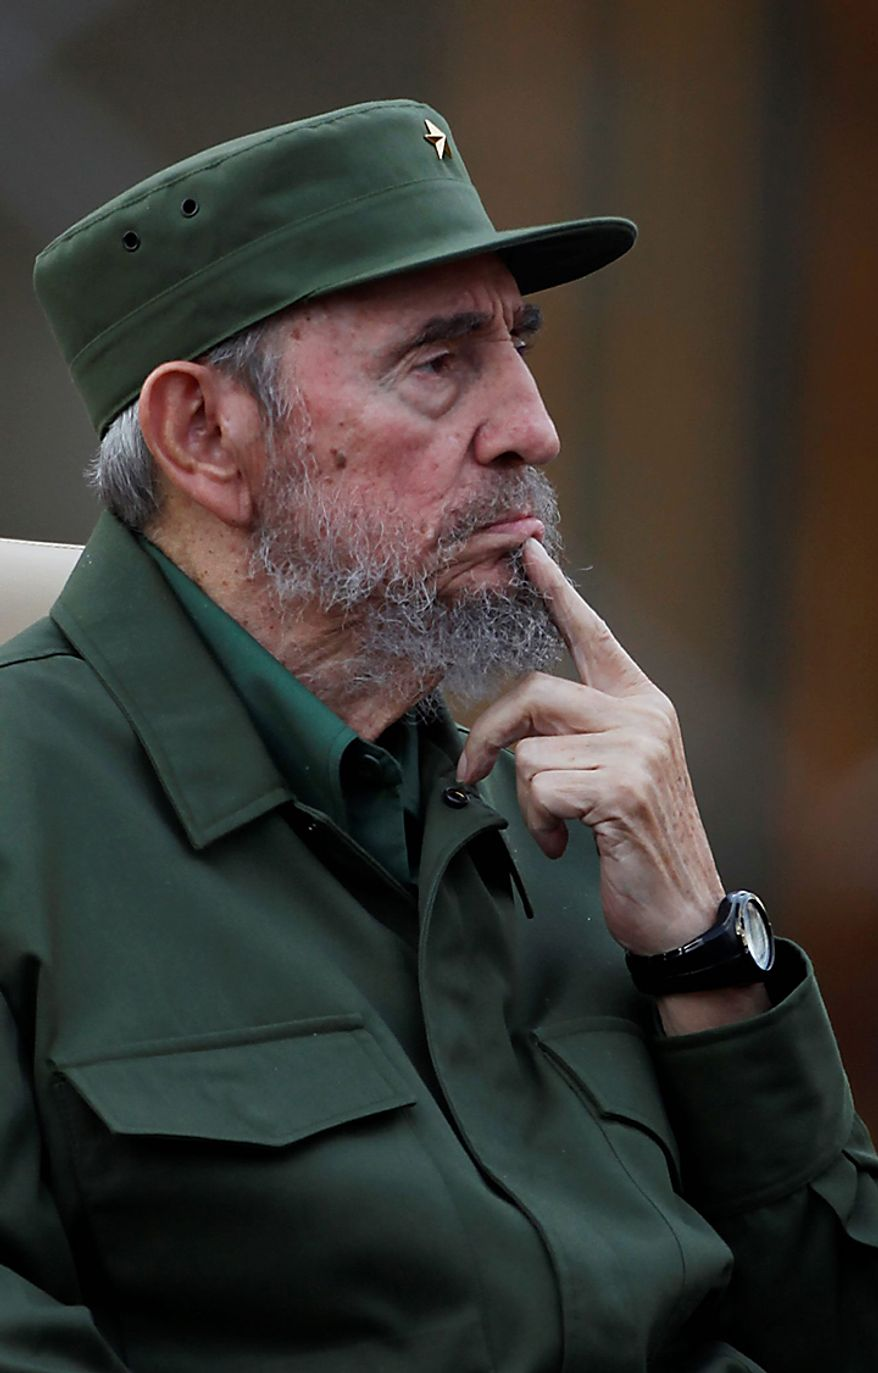 Cuba's leader Fidel Castro listens before delivering a speech during the 50th anniversary of the Committee for the Defense of the Revolution, CDR, in Havana, Cuba, Tuesday, Sept. 28, 2010. (AP Photo/Javier Galeano)